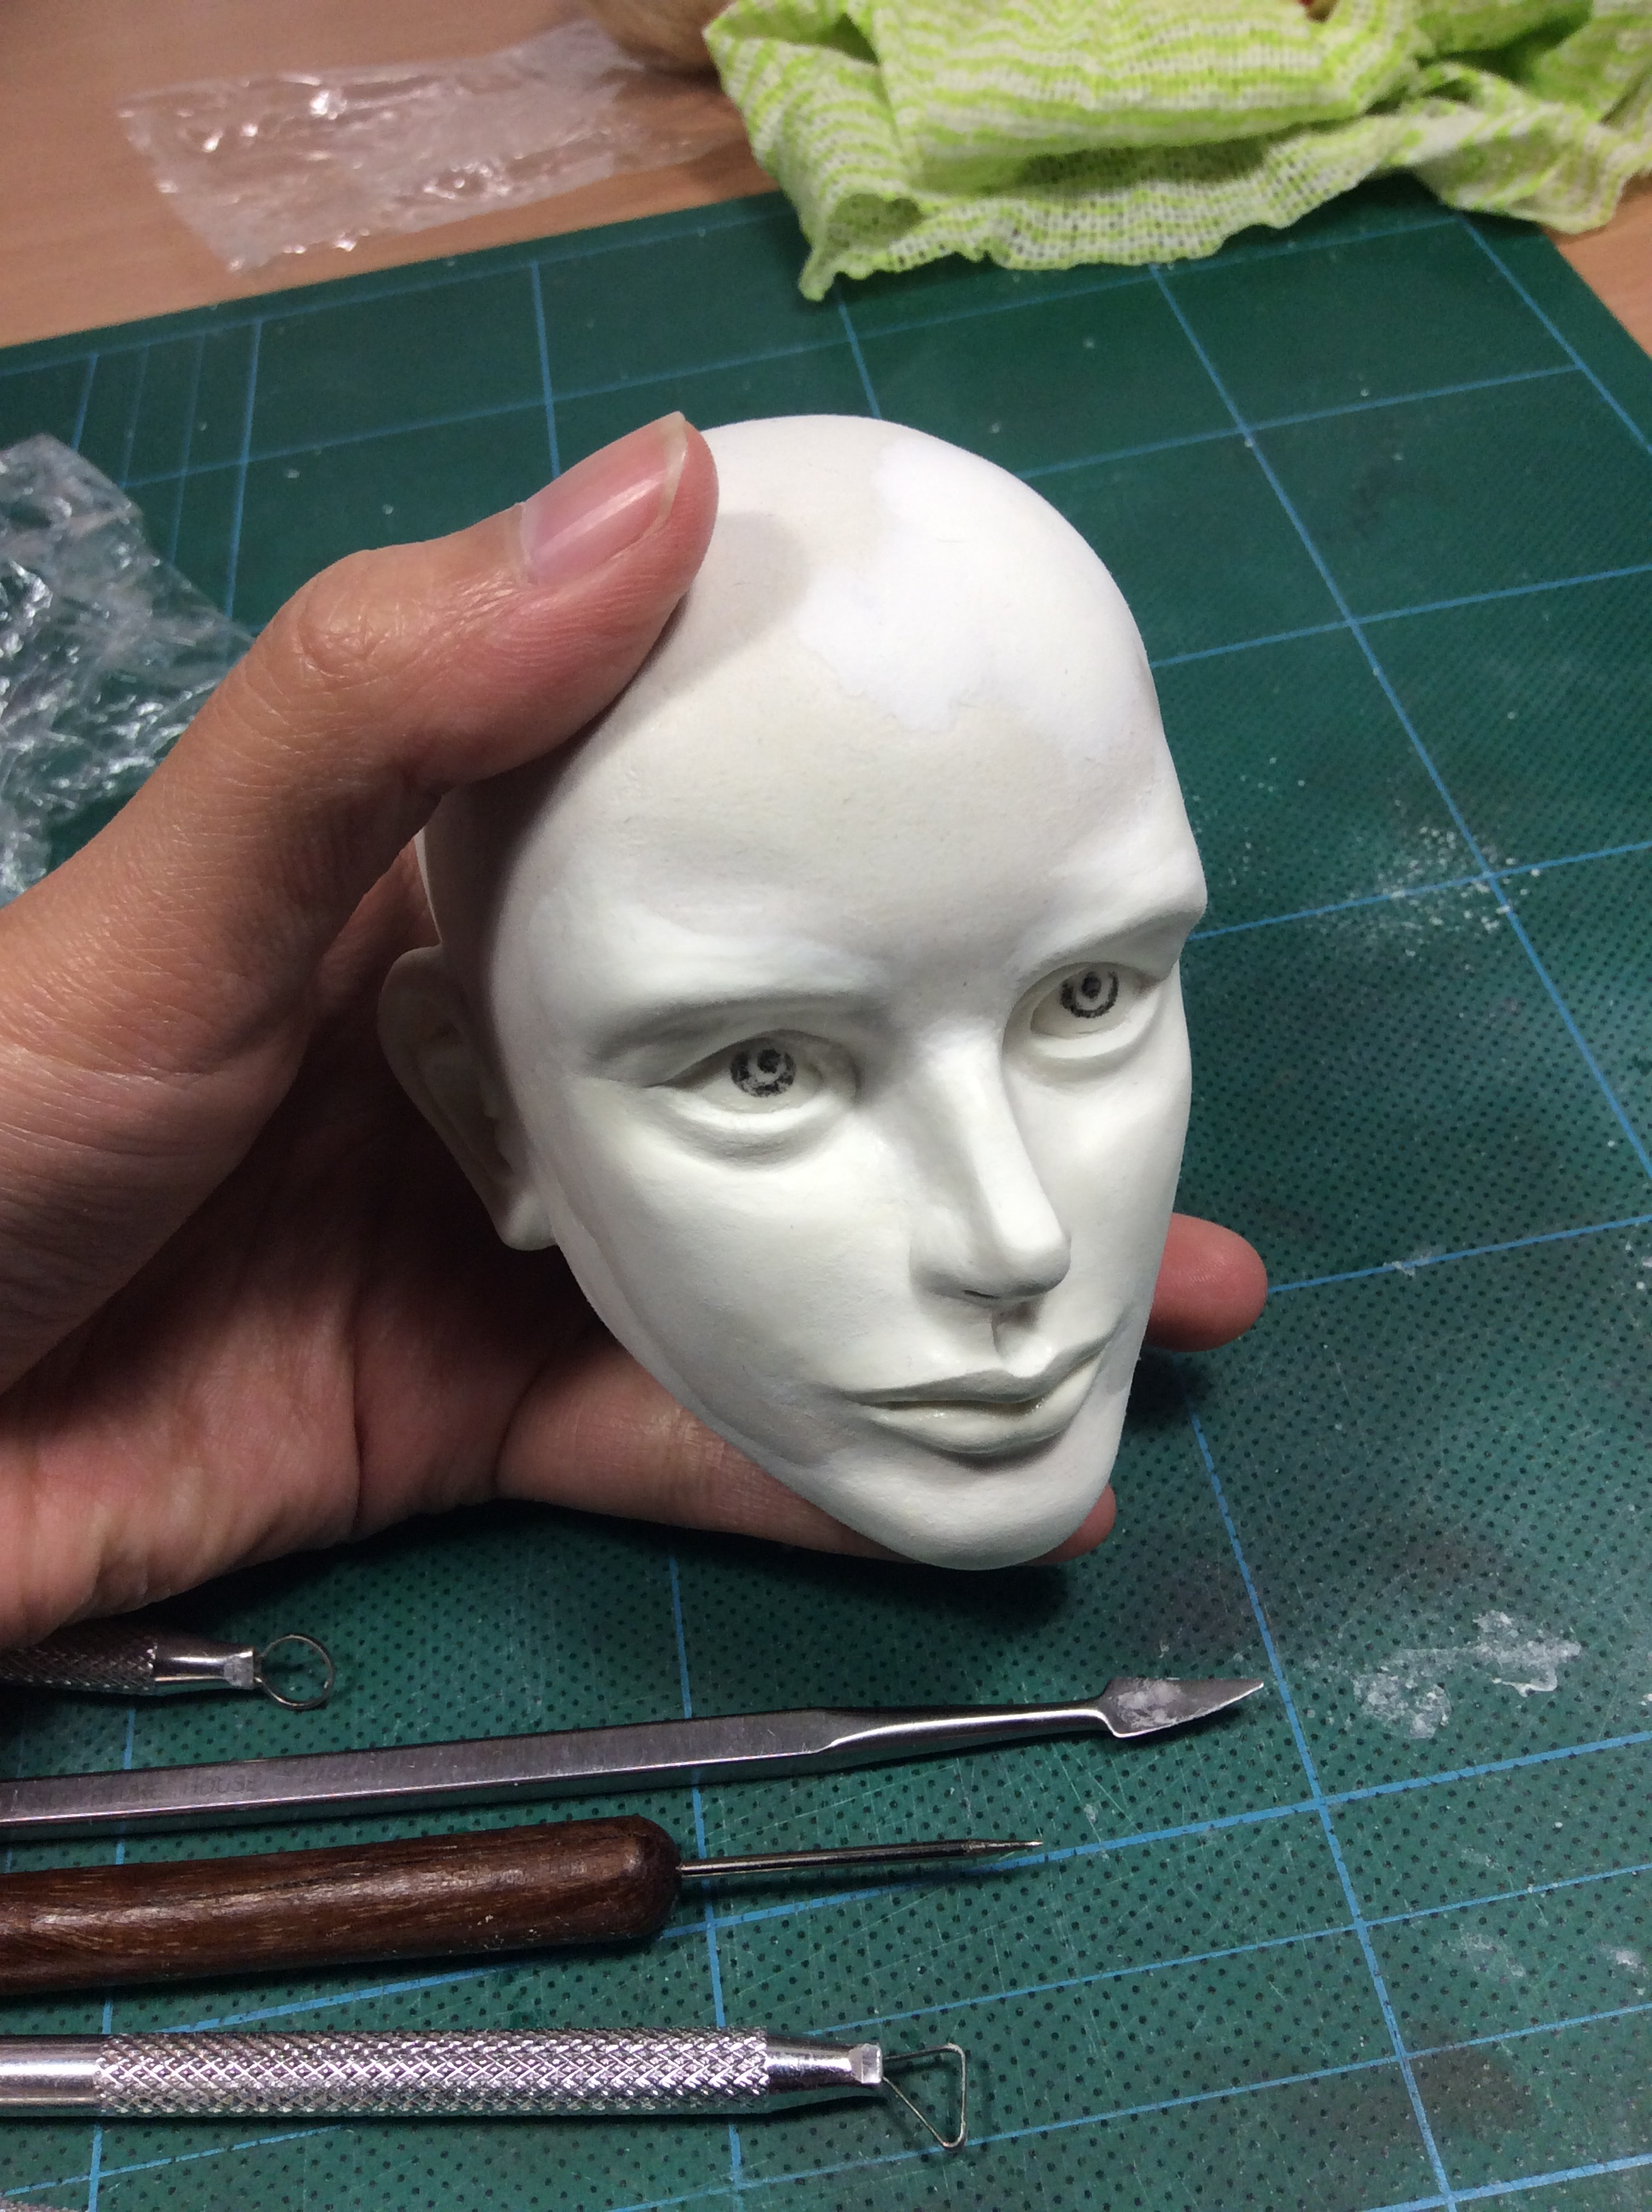 jemse---my-first-doll-head-making-progress-diary-part-4_32386722426_o